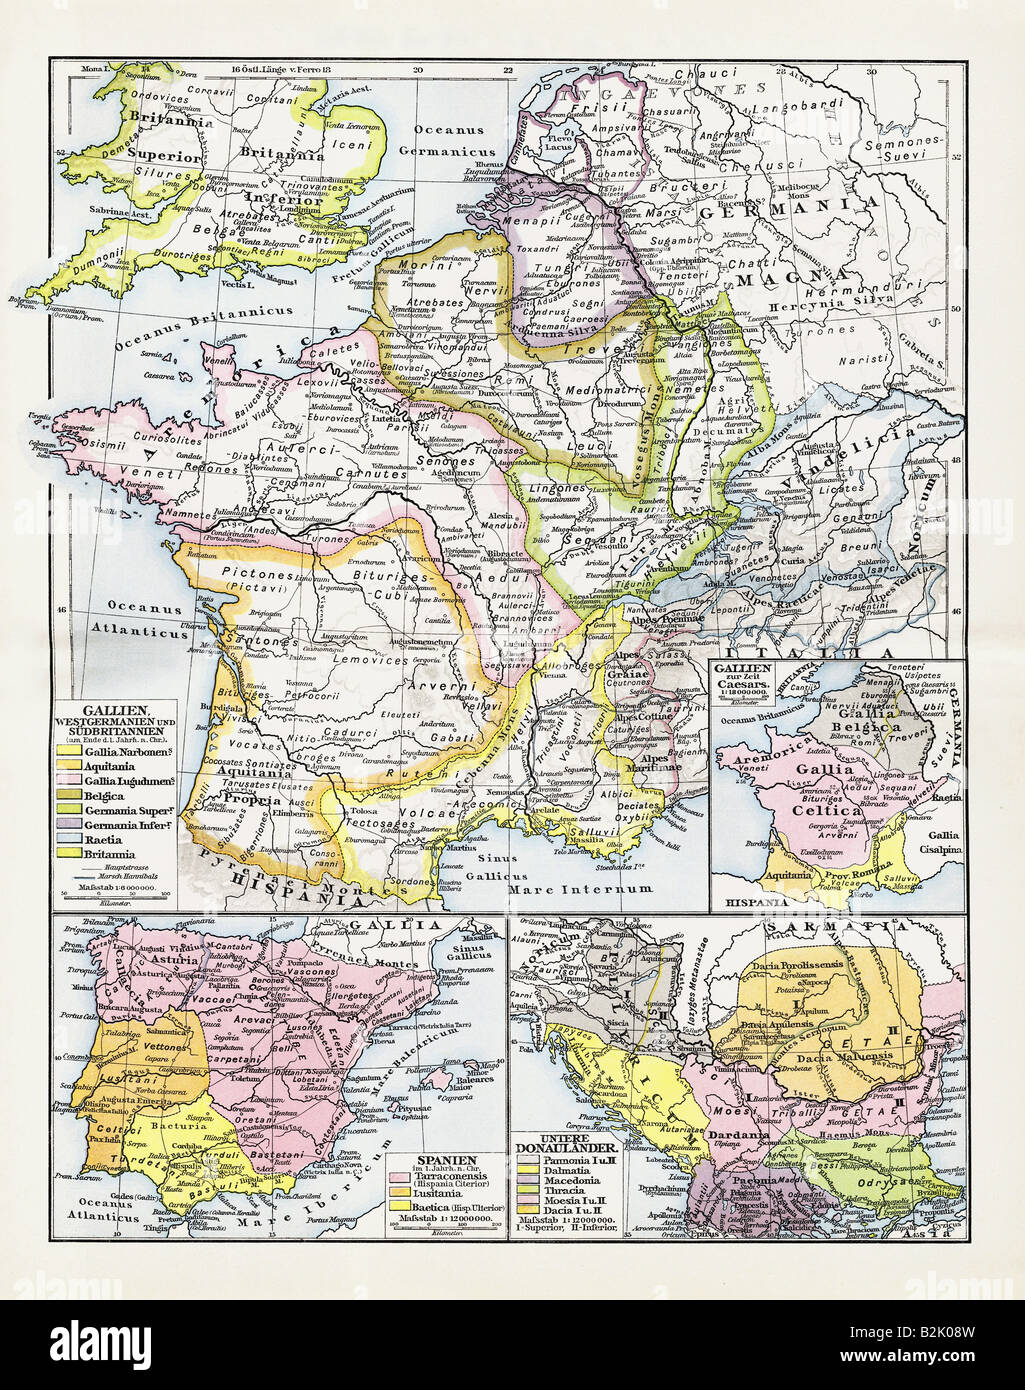 cartography, historical maps, ancient world, Roman Empire, European provinces, 1st - 3rd century AD, F. W. Putzger, - Stock Image